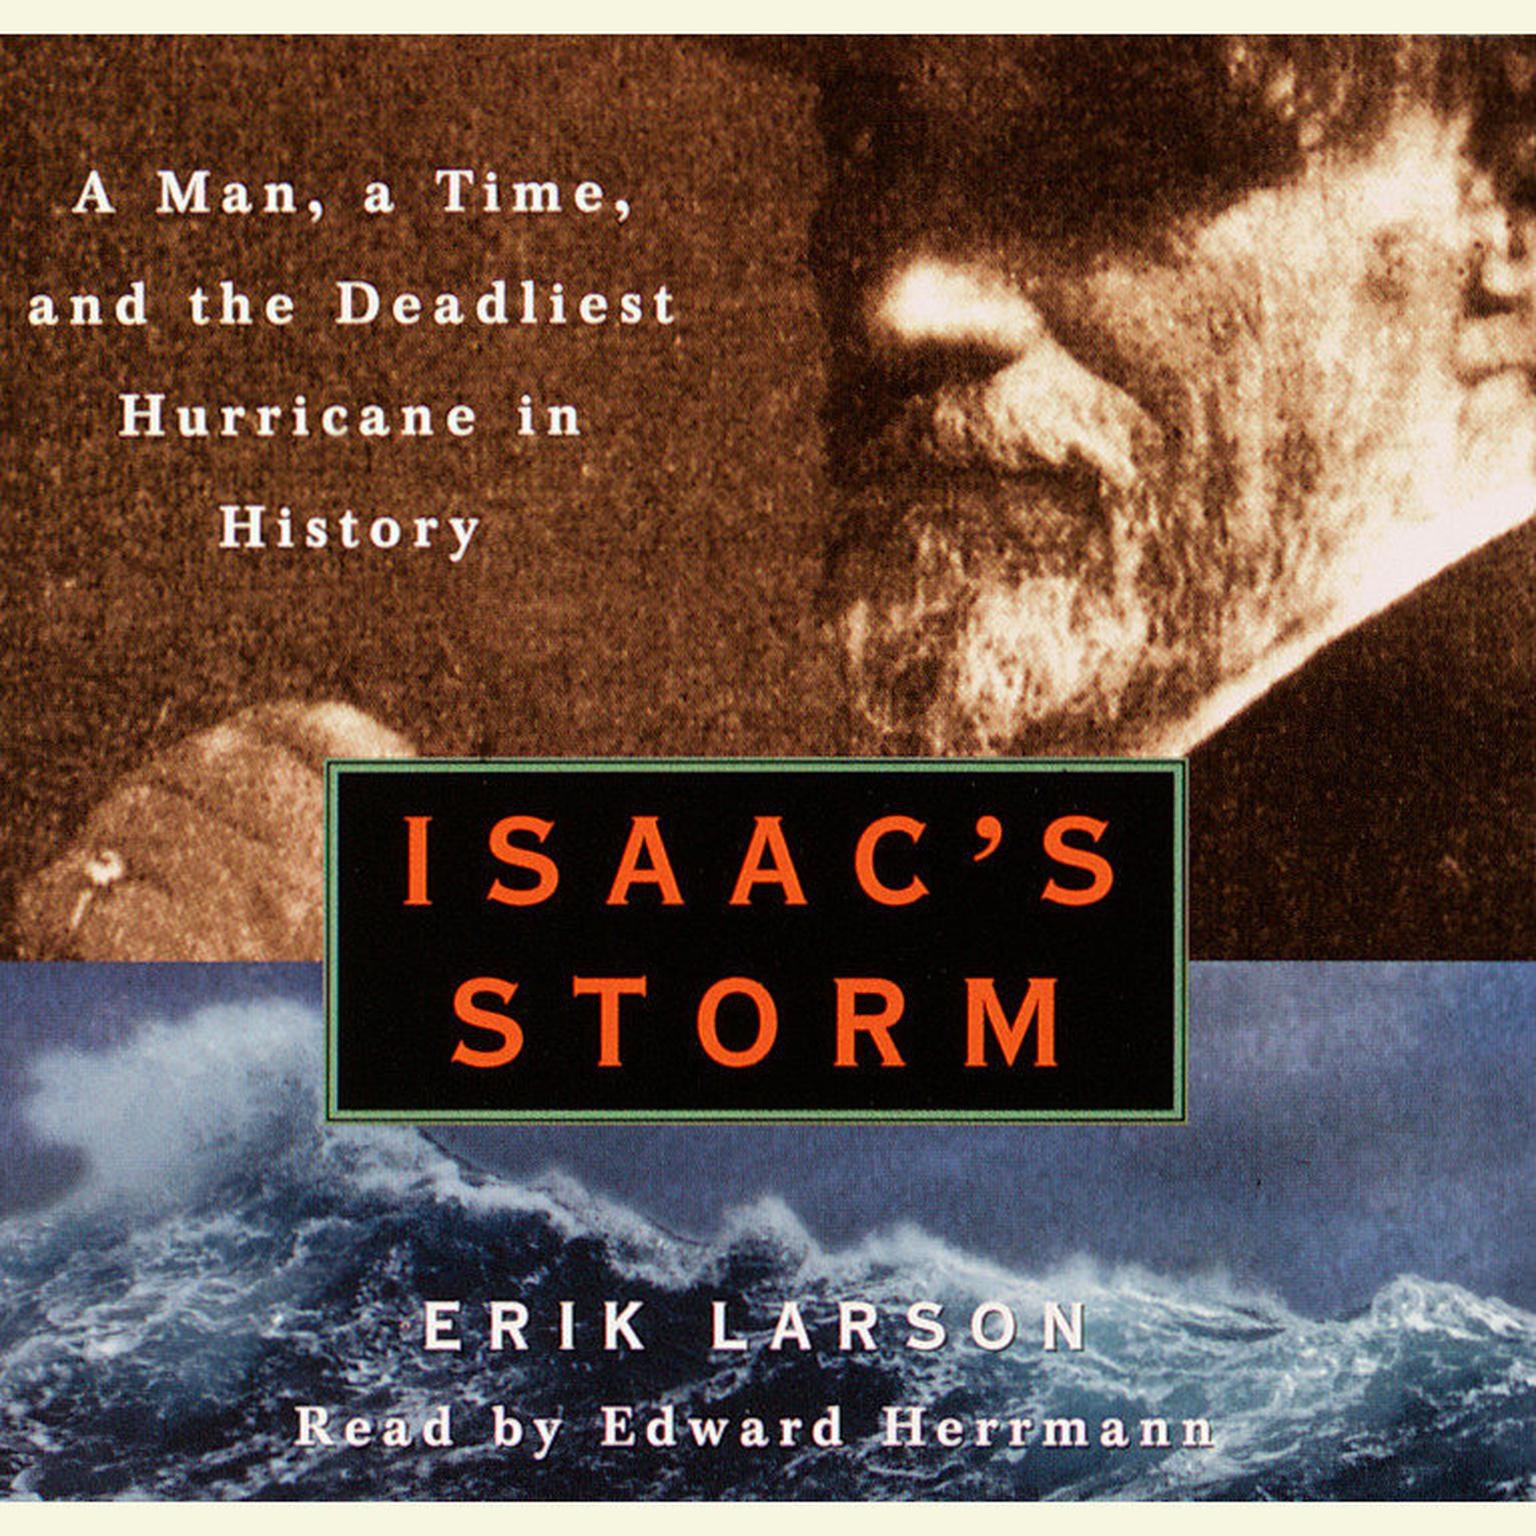 an analysis of the book isaac storm by erik larson Listen to isaac's storm a man, a time, and the deadliest hurricane in history by erik larson with rakuten kobo narrated by edward herrmann national bestseller september 8, 1900, began innocently in the seaside town of galveston, texas even isaac cline, resi.